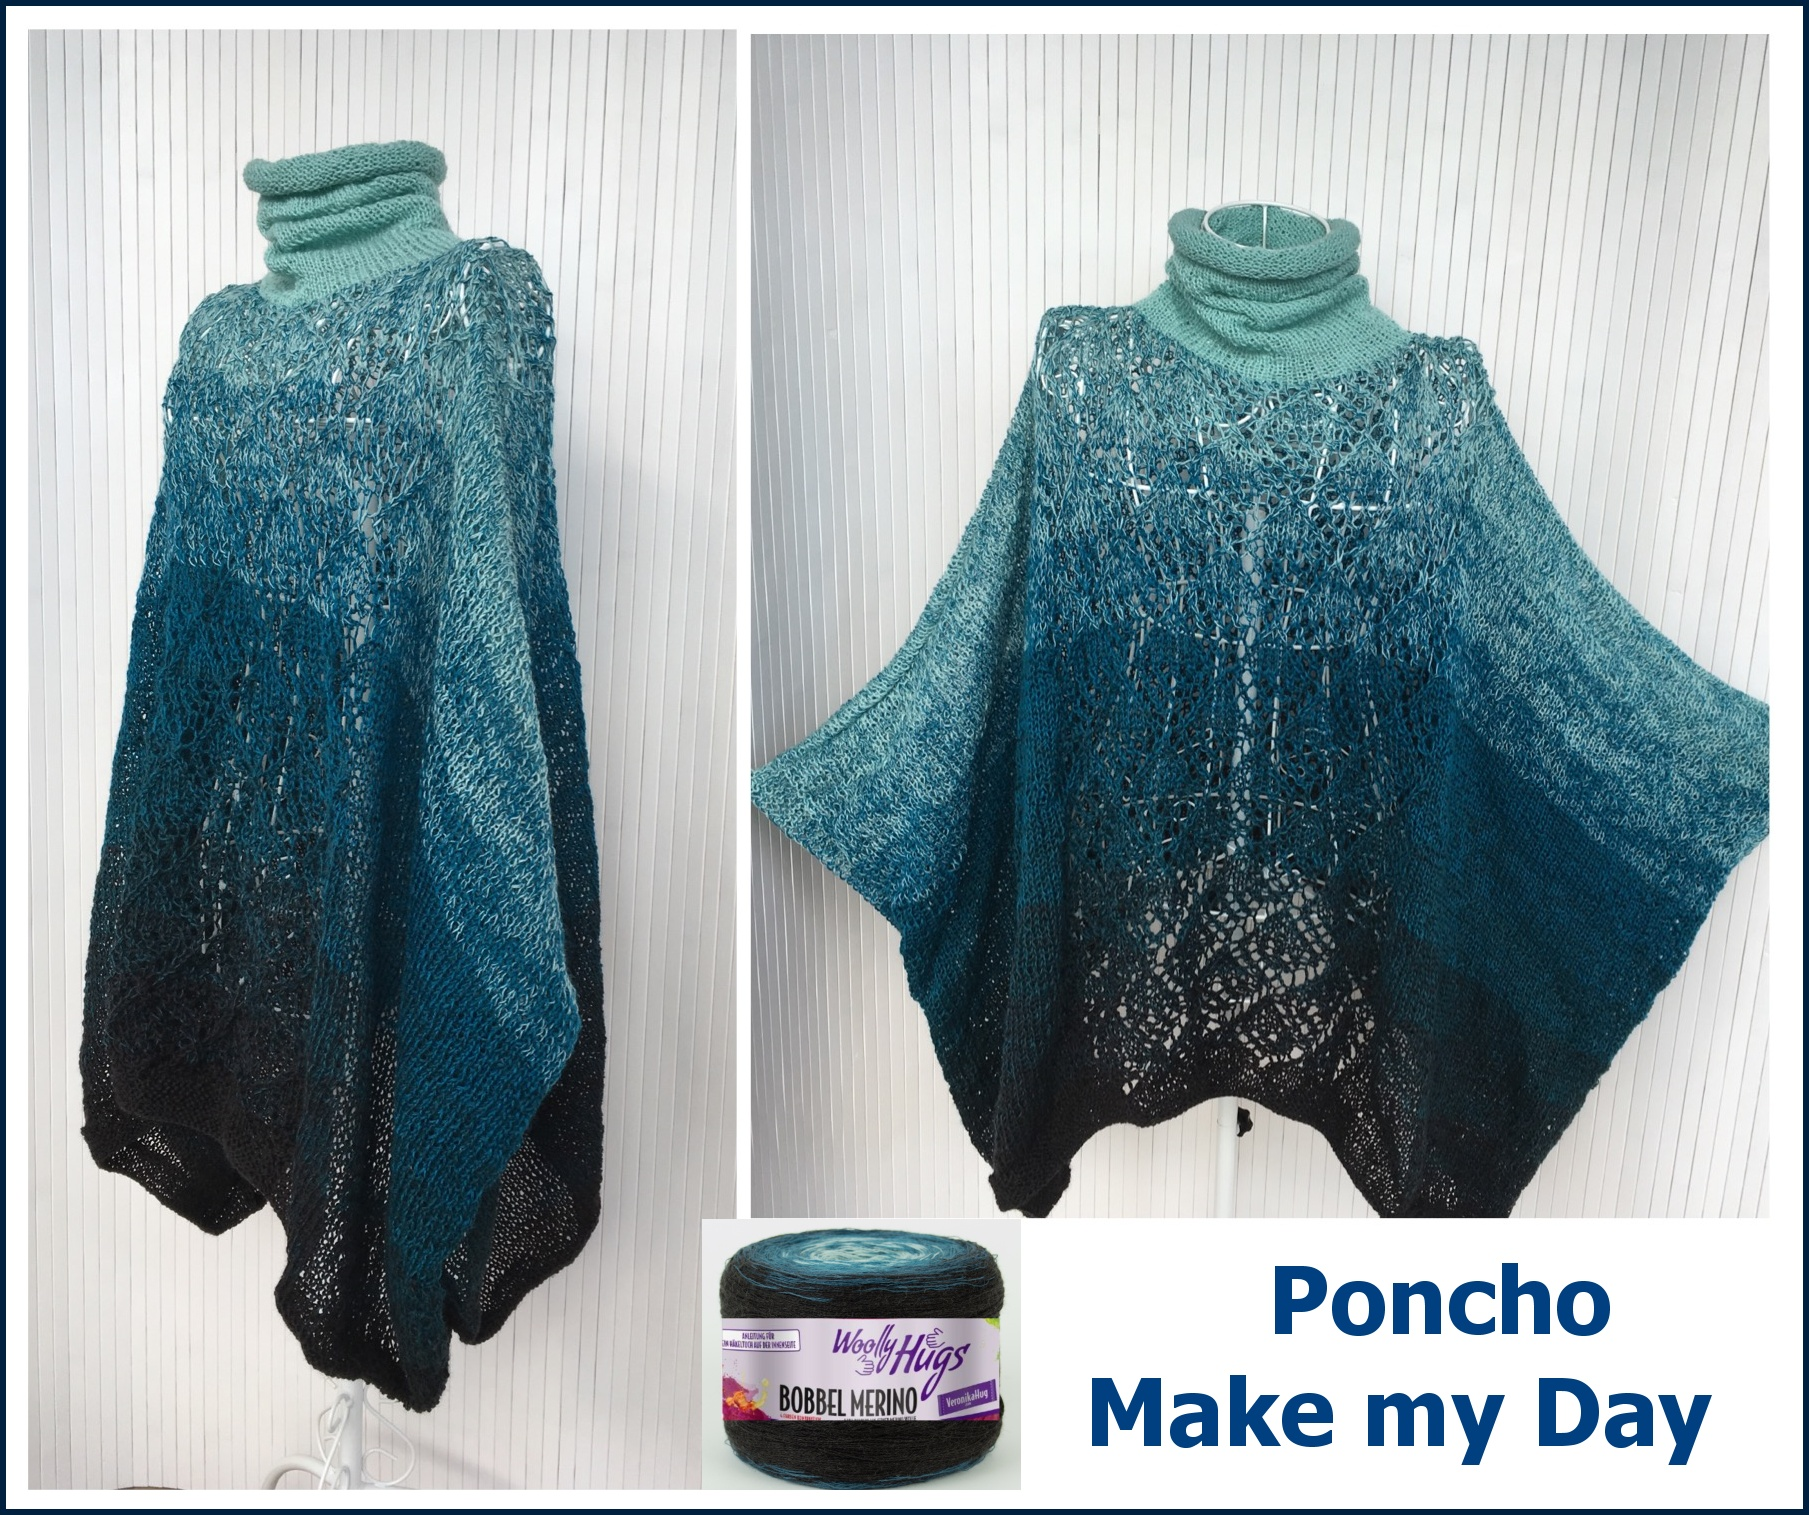 Poncho Make My Day Collage